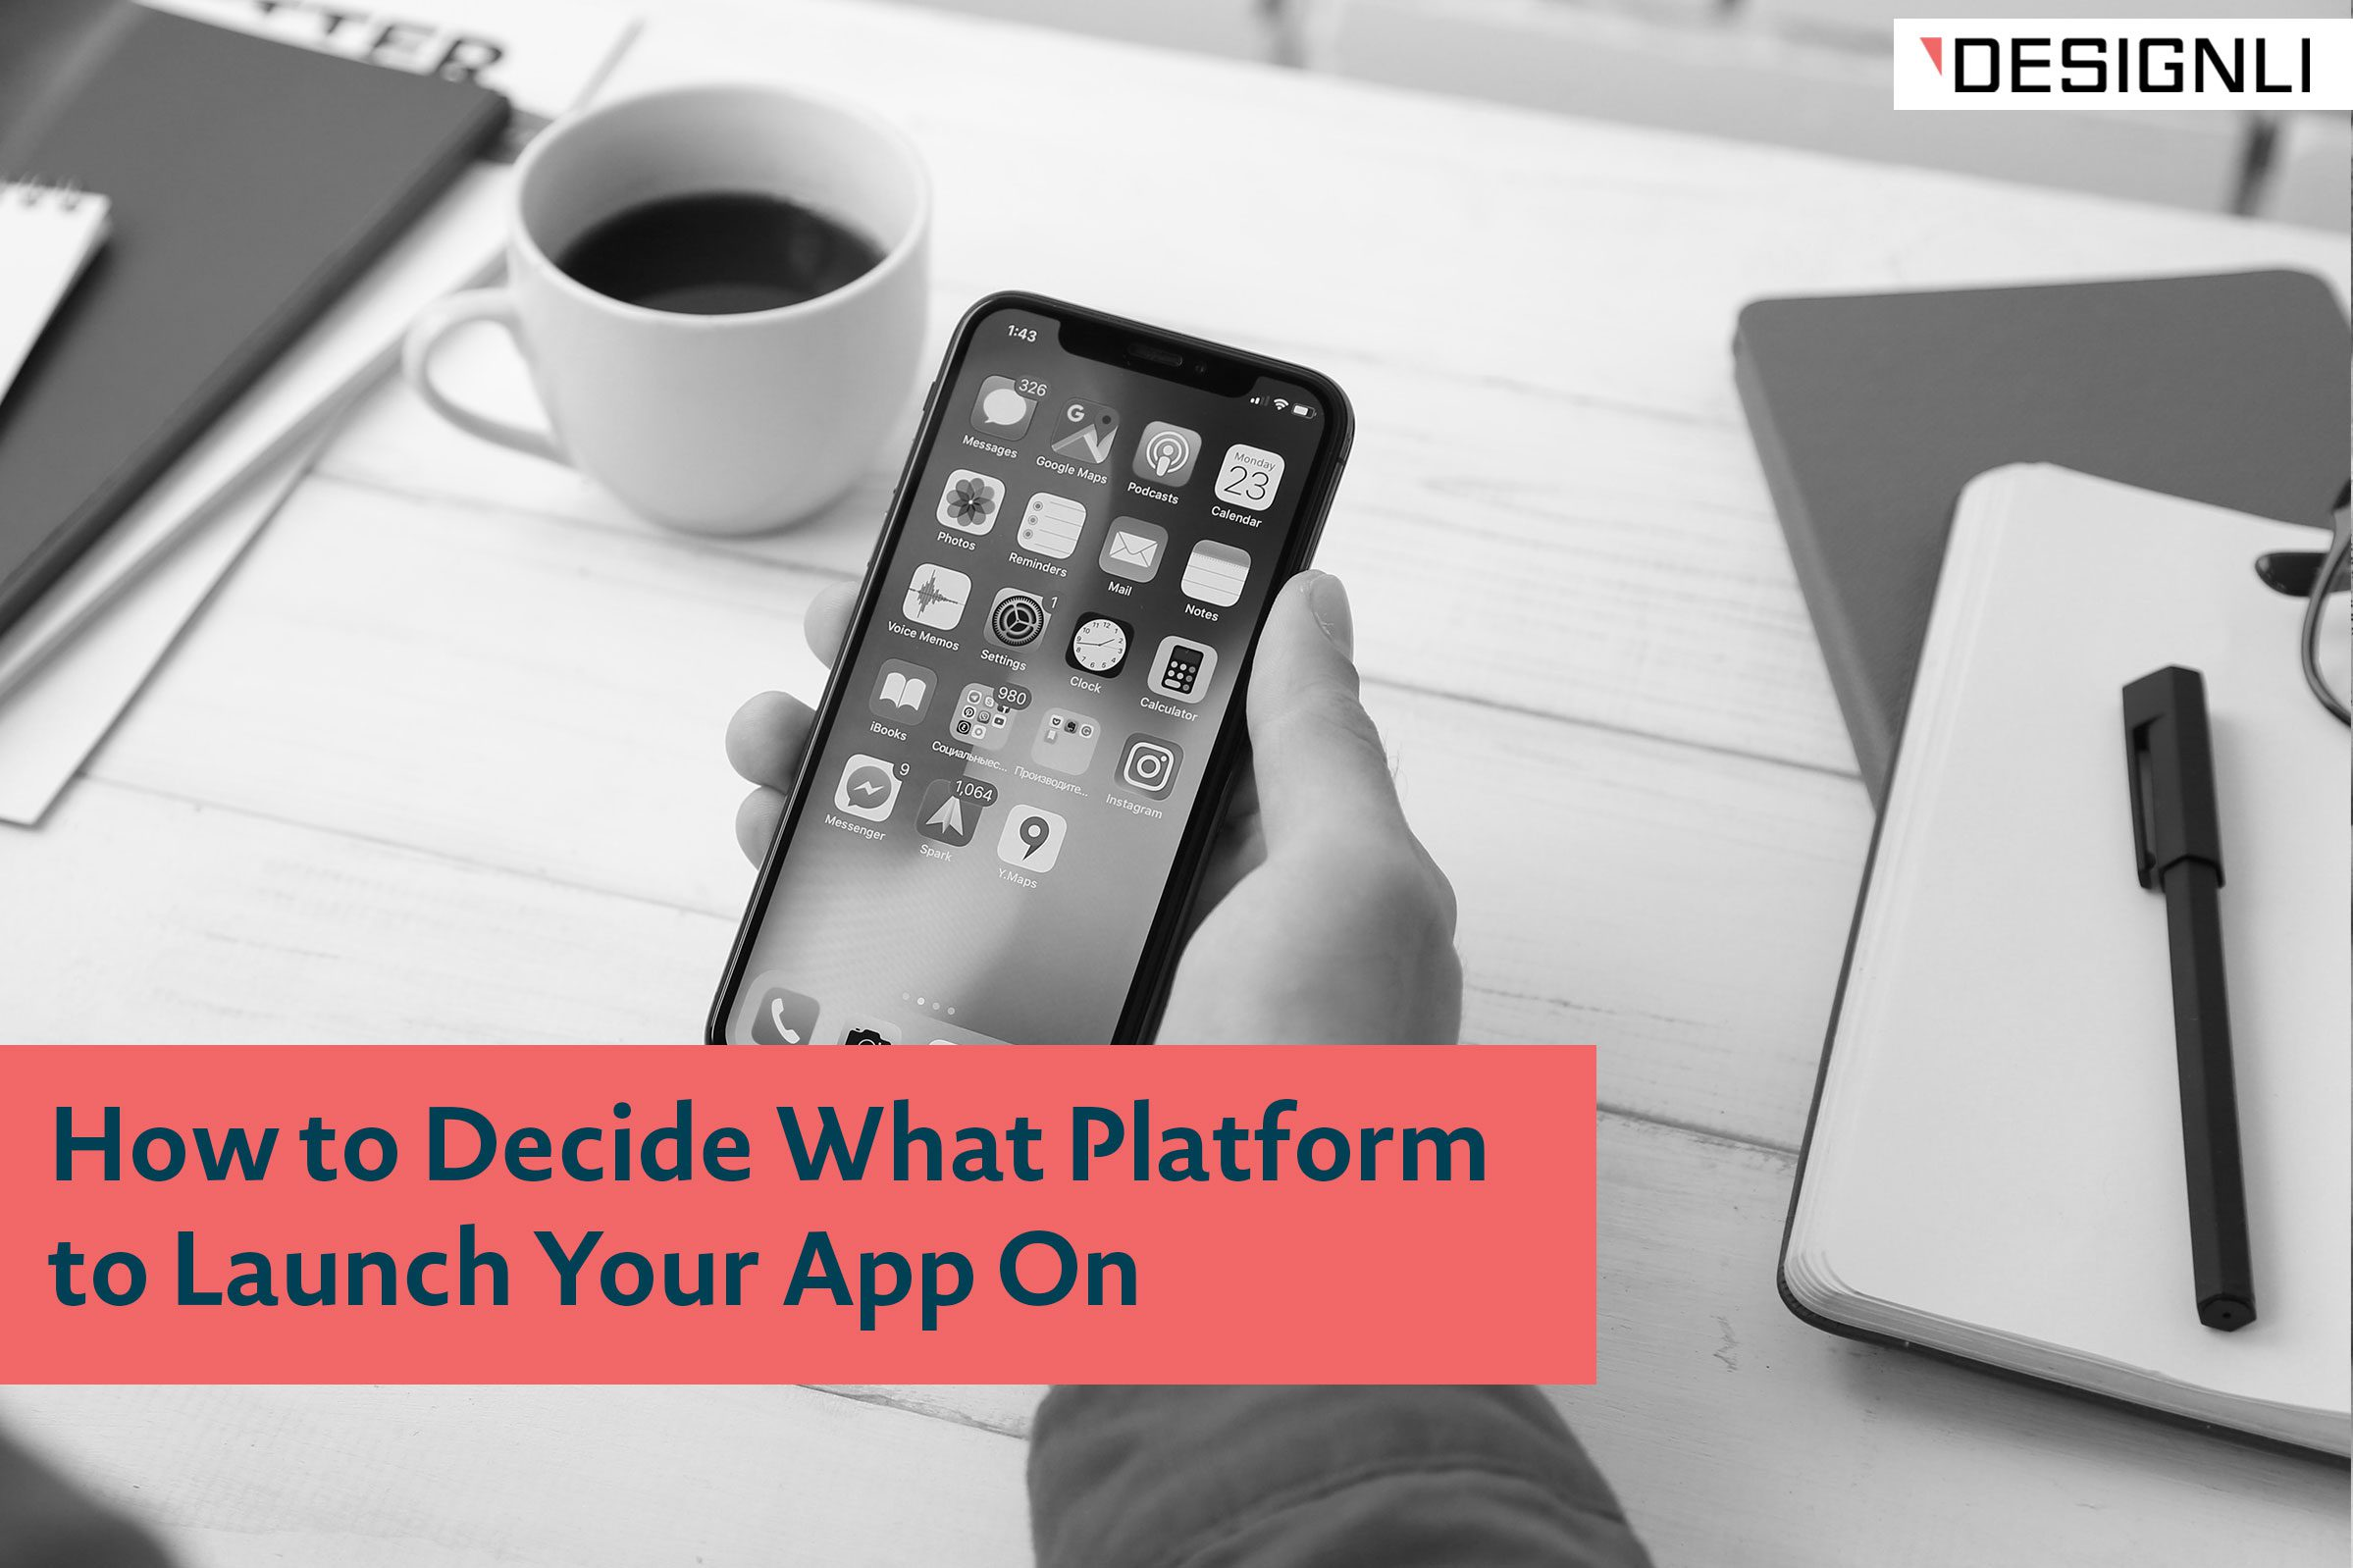 platform to launch your app on